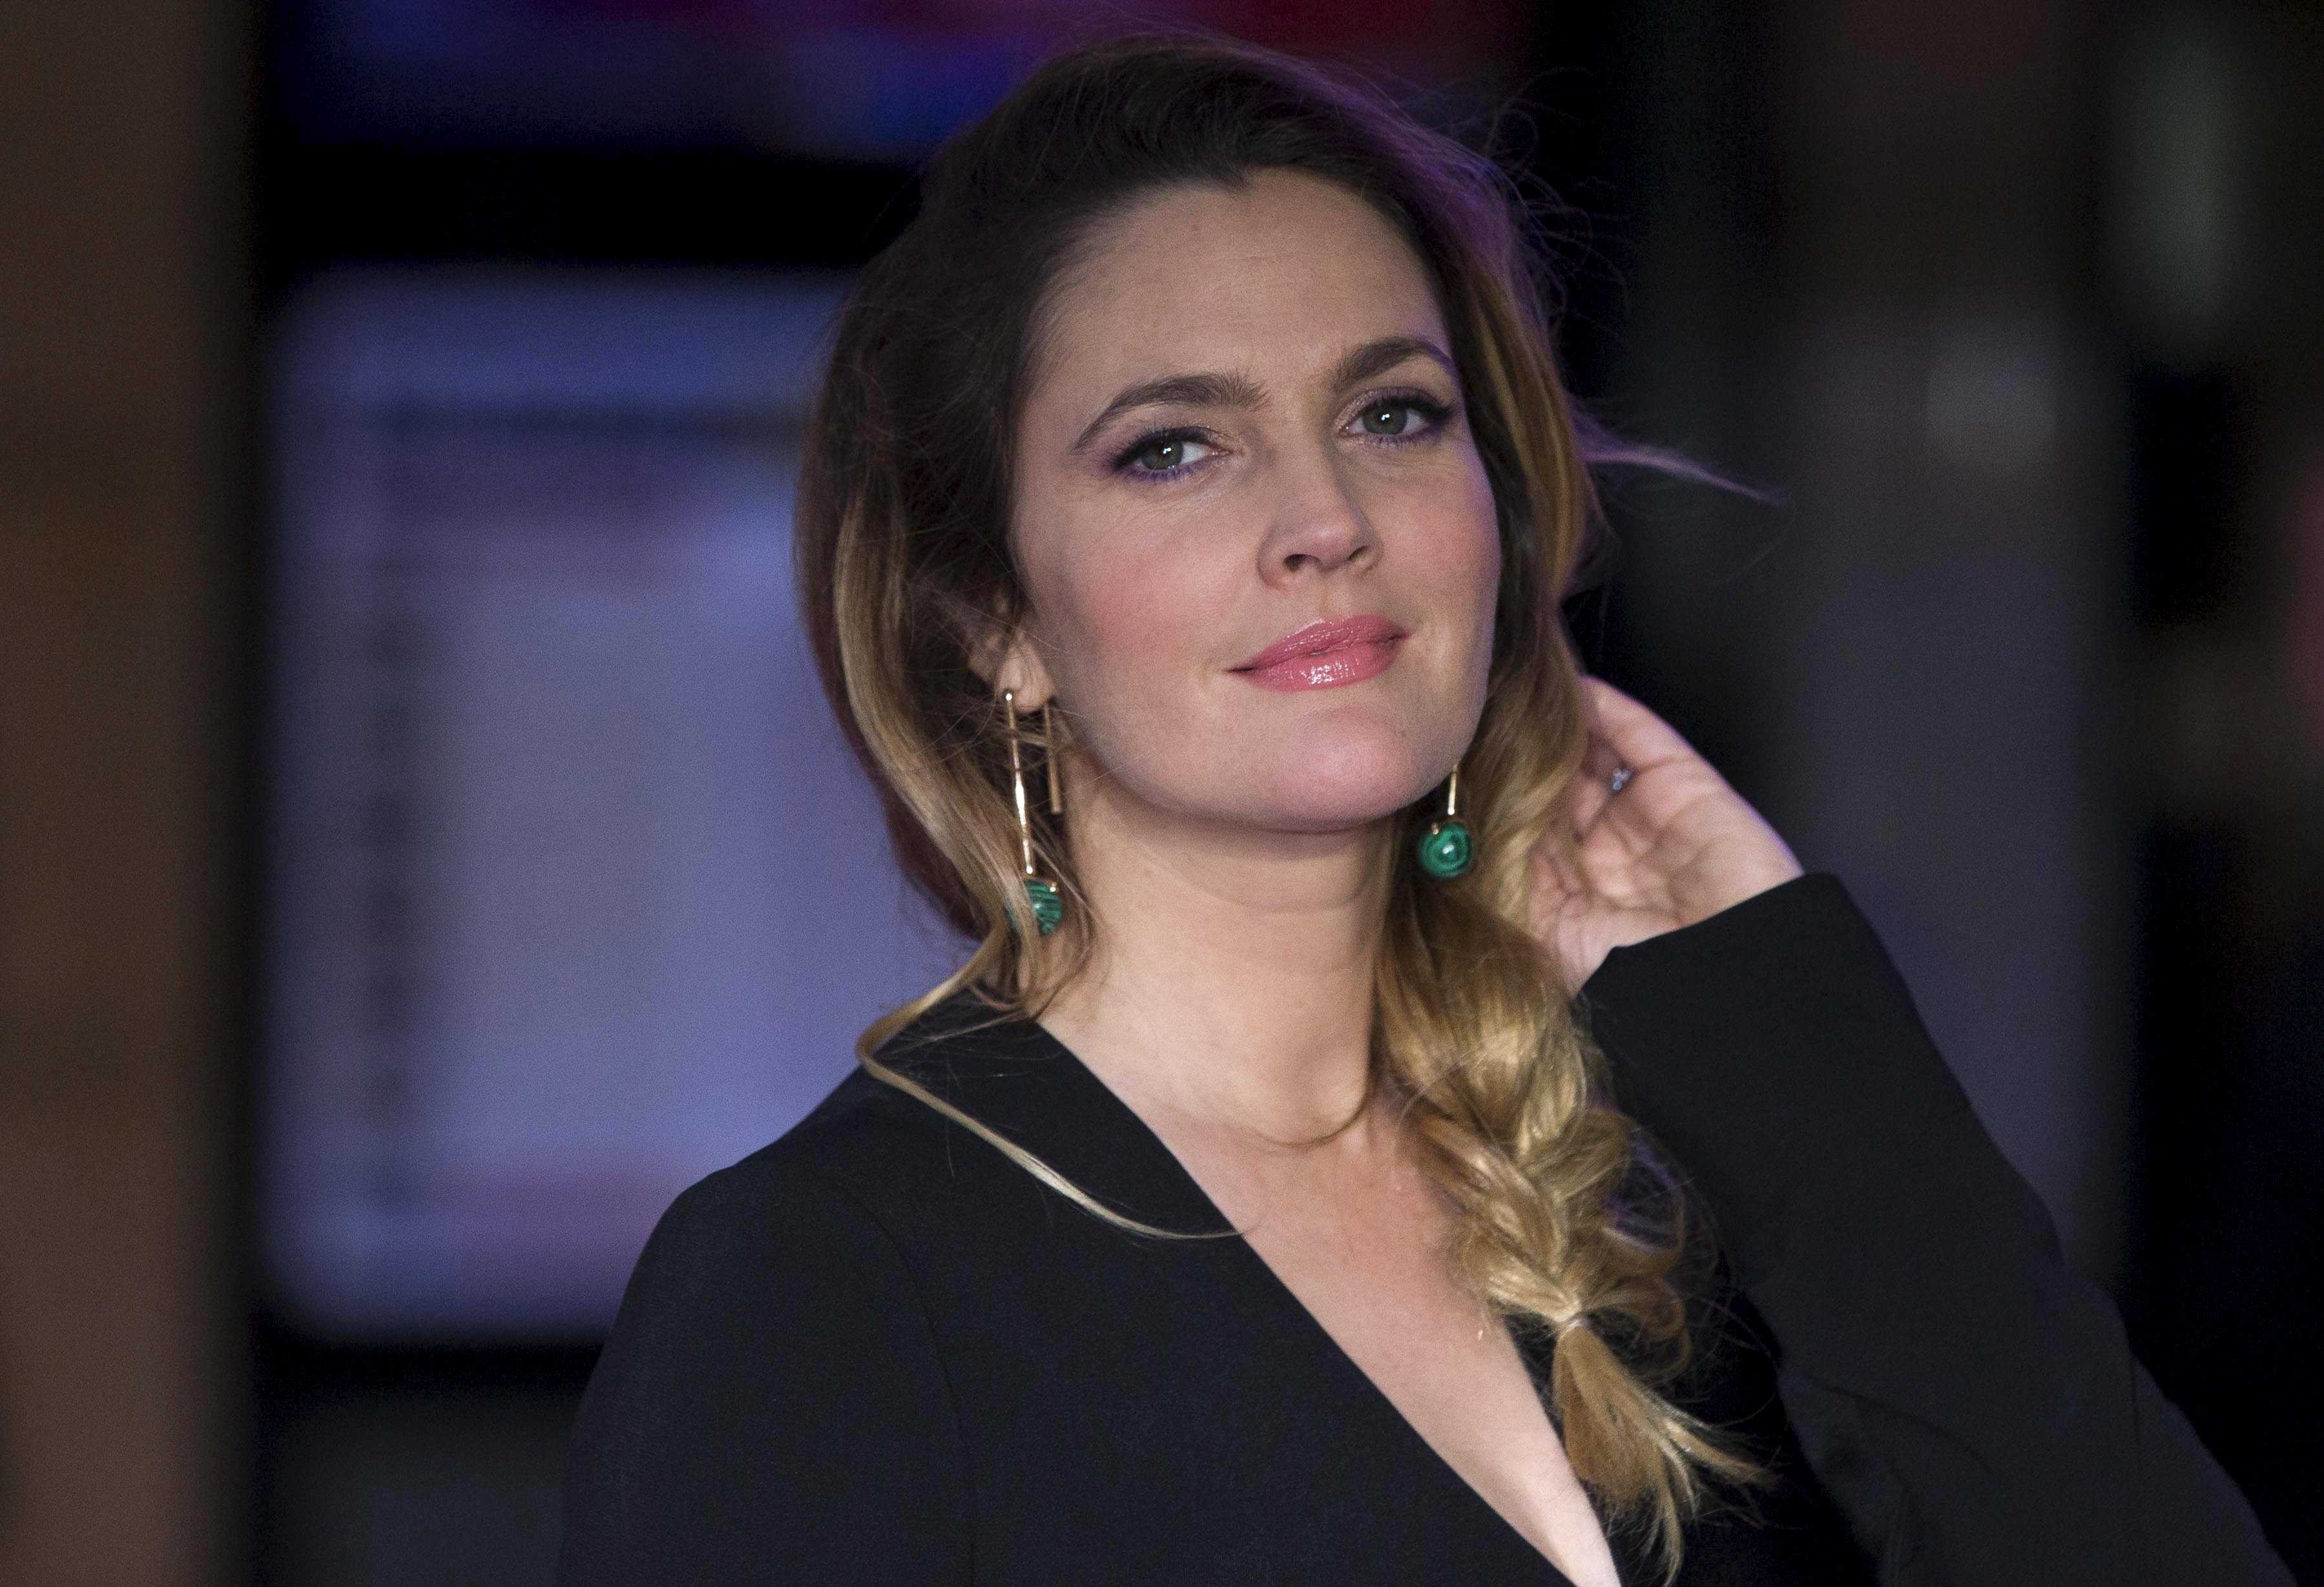 Drew Barrymore's dieting struggles: 'All I did was cry'